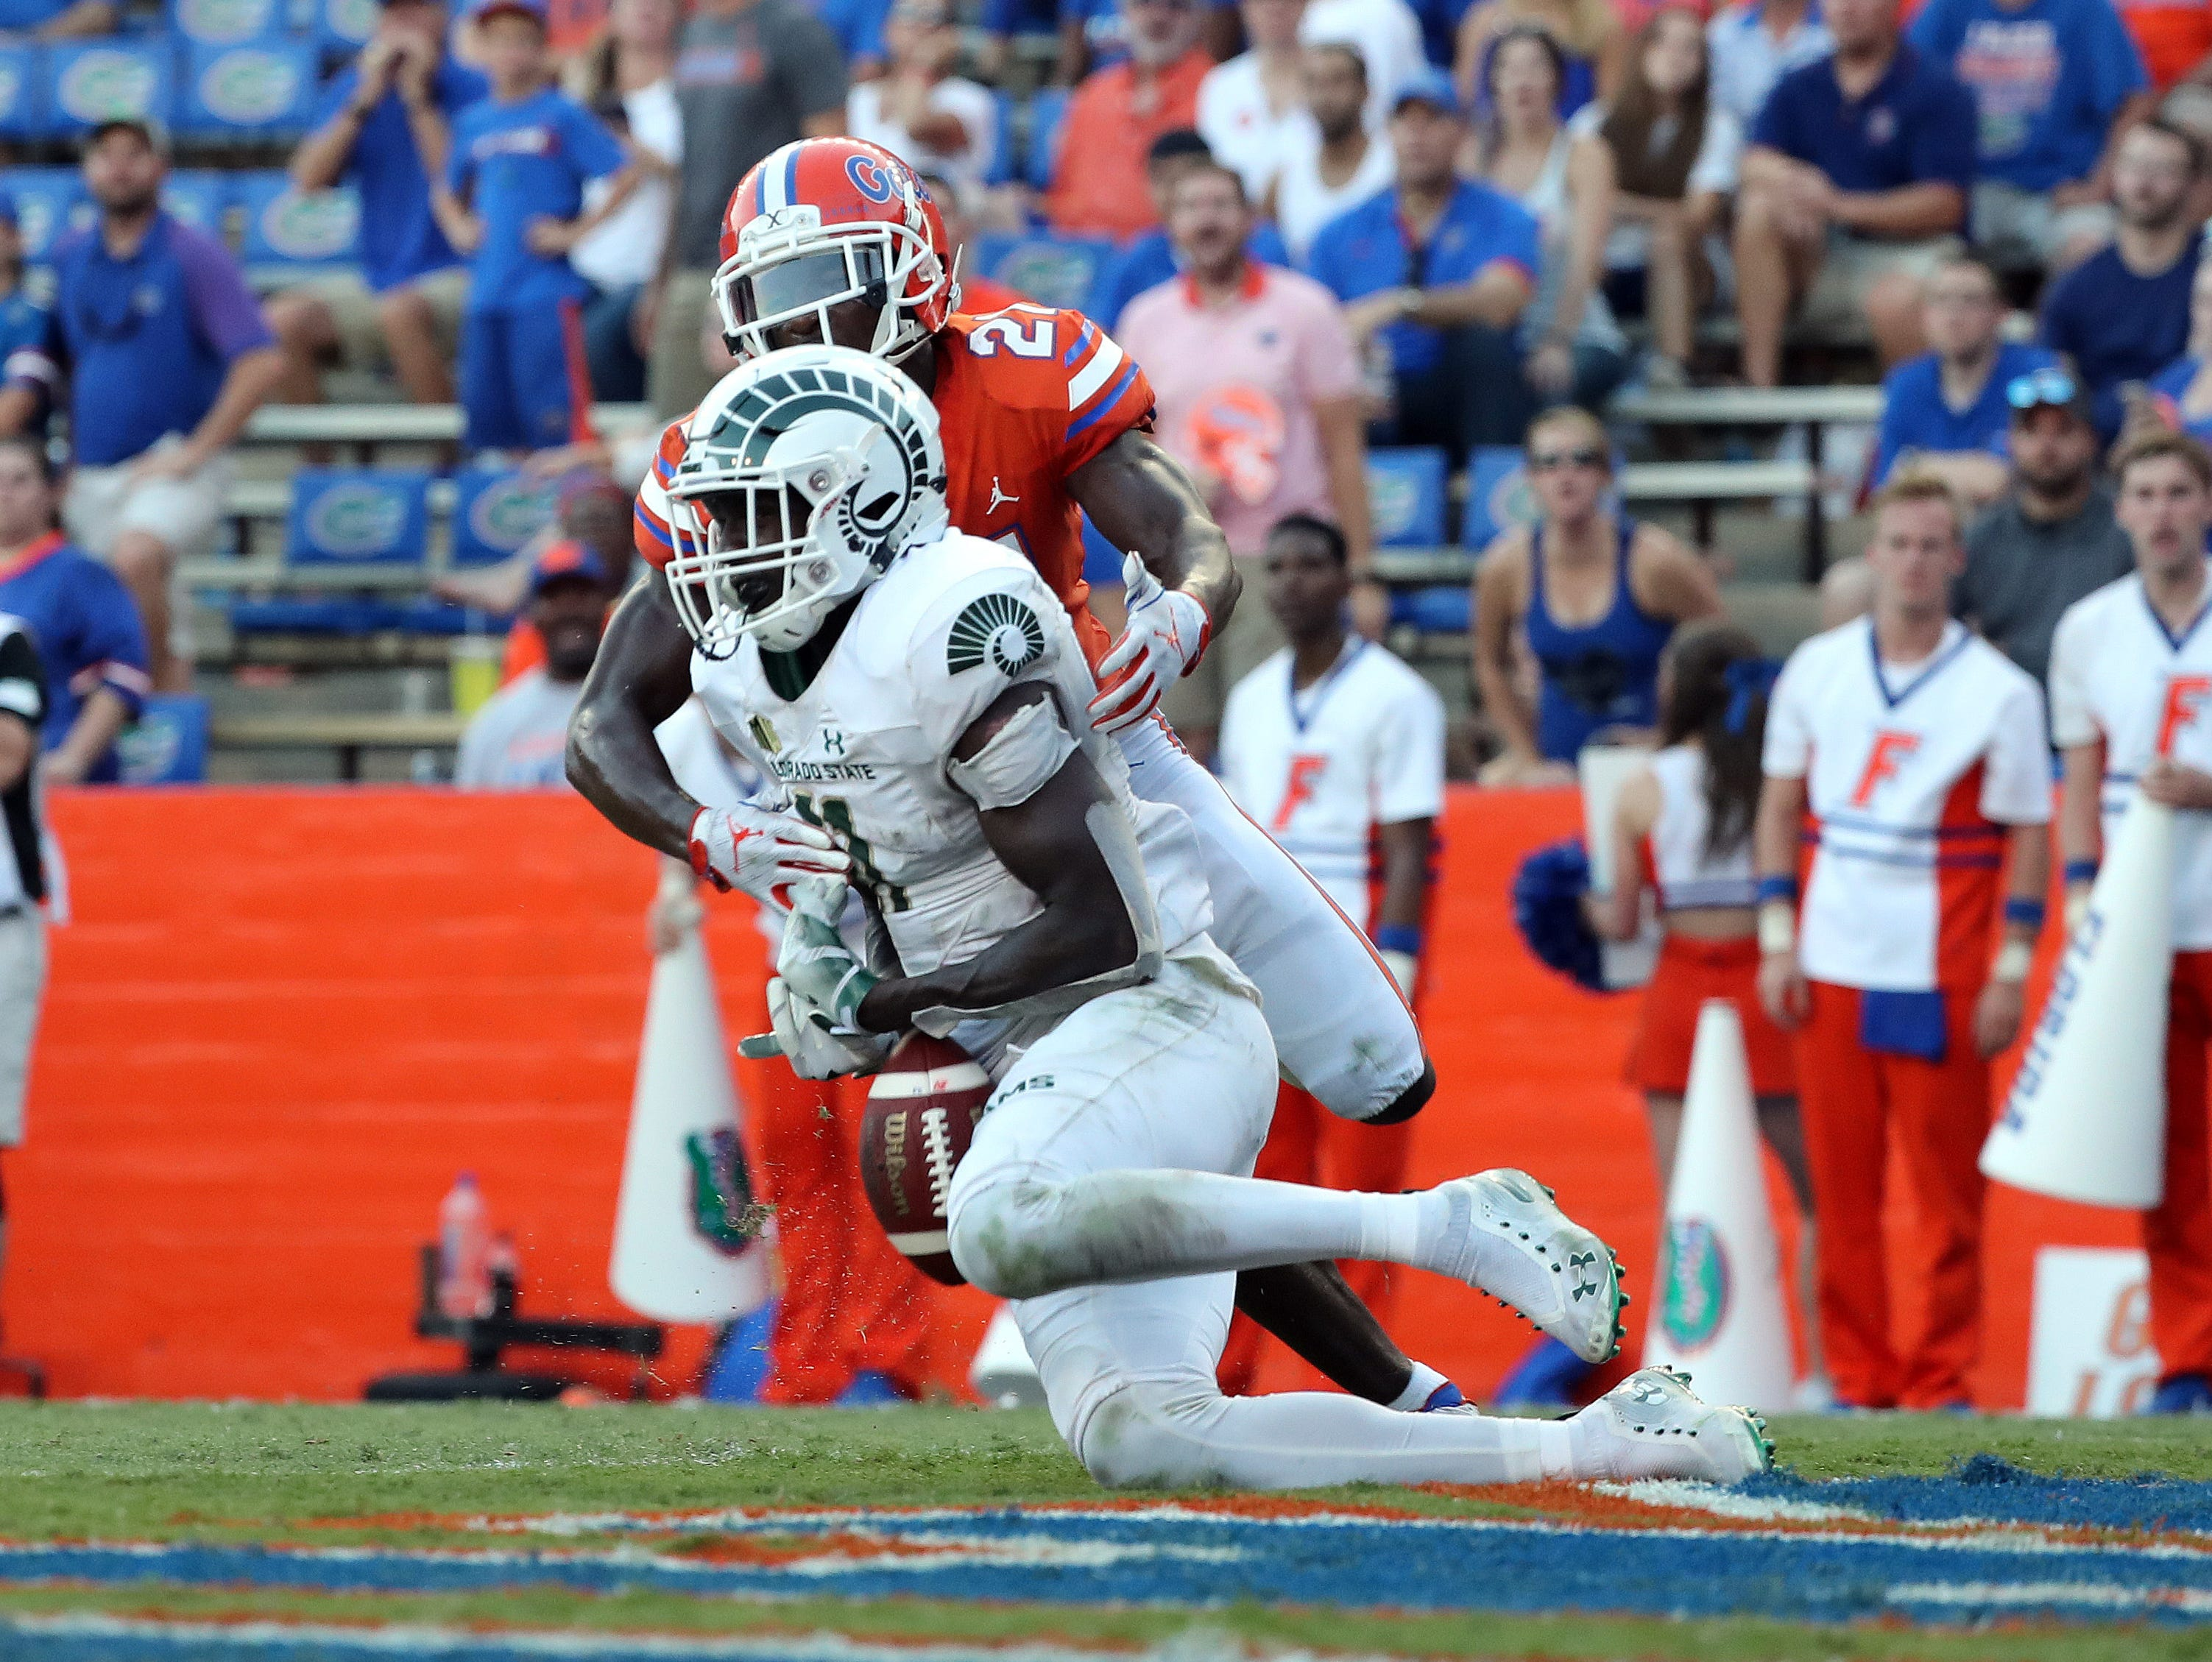 Sep 15, 2018; Gainesville, FL, USA; Florida Gators defensive back Trey Dean III (21) breaks up a pass intended for Colorado State Rams wide receiver Preston Williams (11) in the end zone during the second half at Ben Hill Griffin Stadium. Mandatory Credit: Kim Klement-USA TODAY Sports